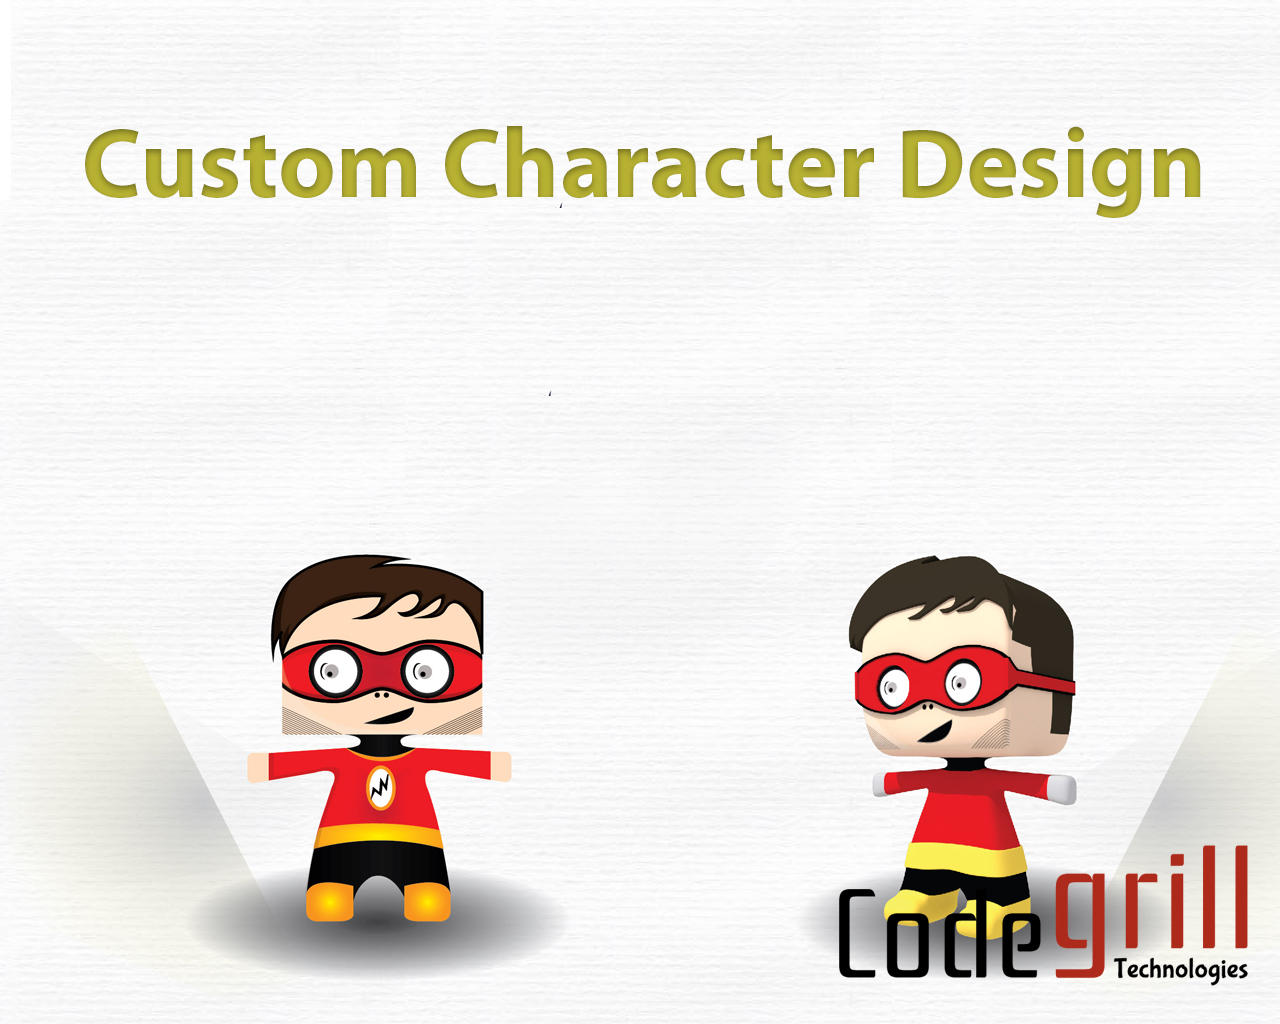 Character Design for Games - Apps - Website by lubolabs - 95392